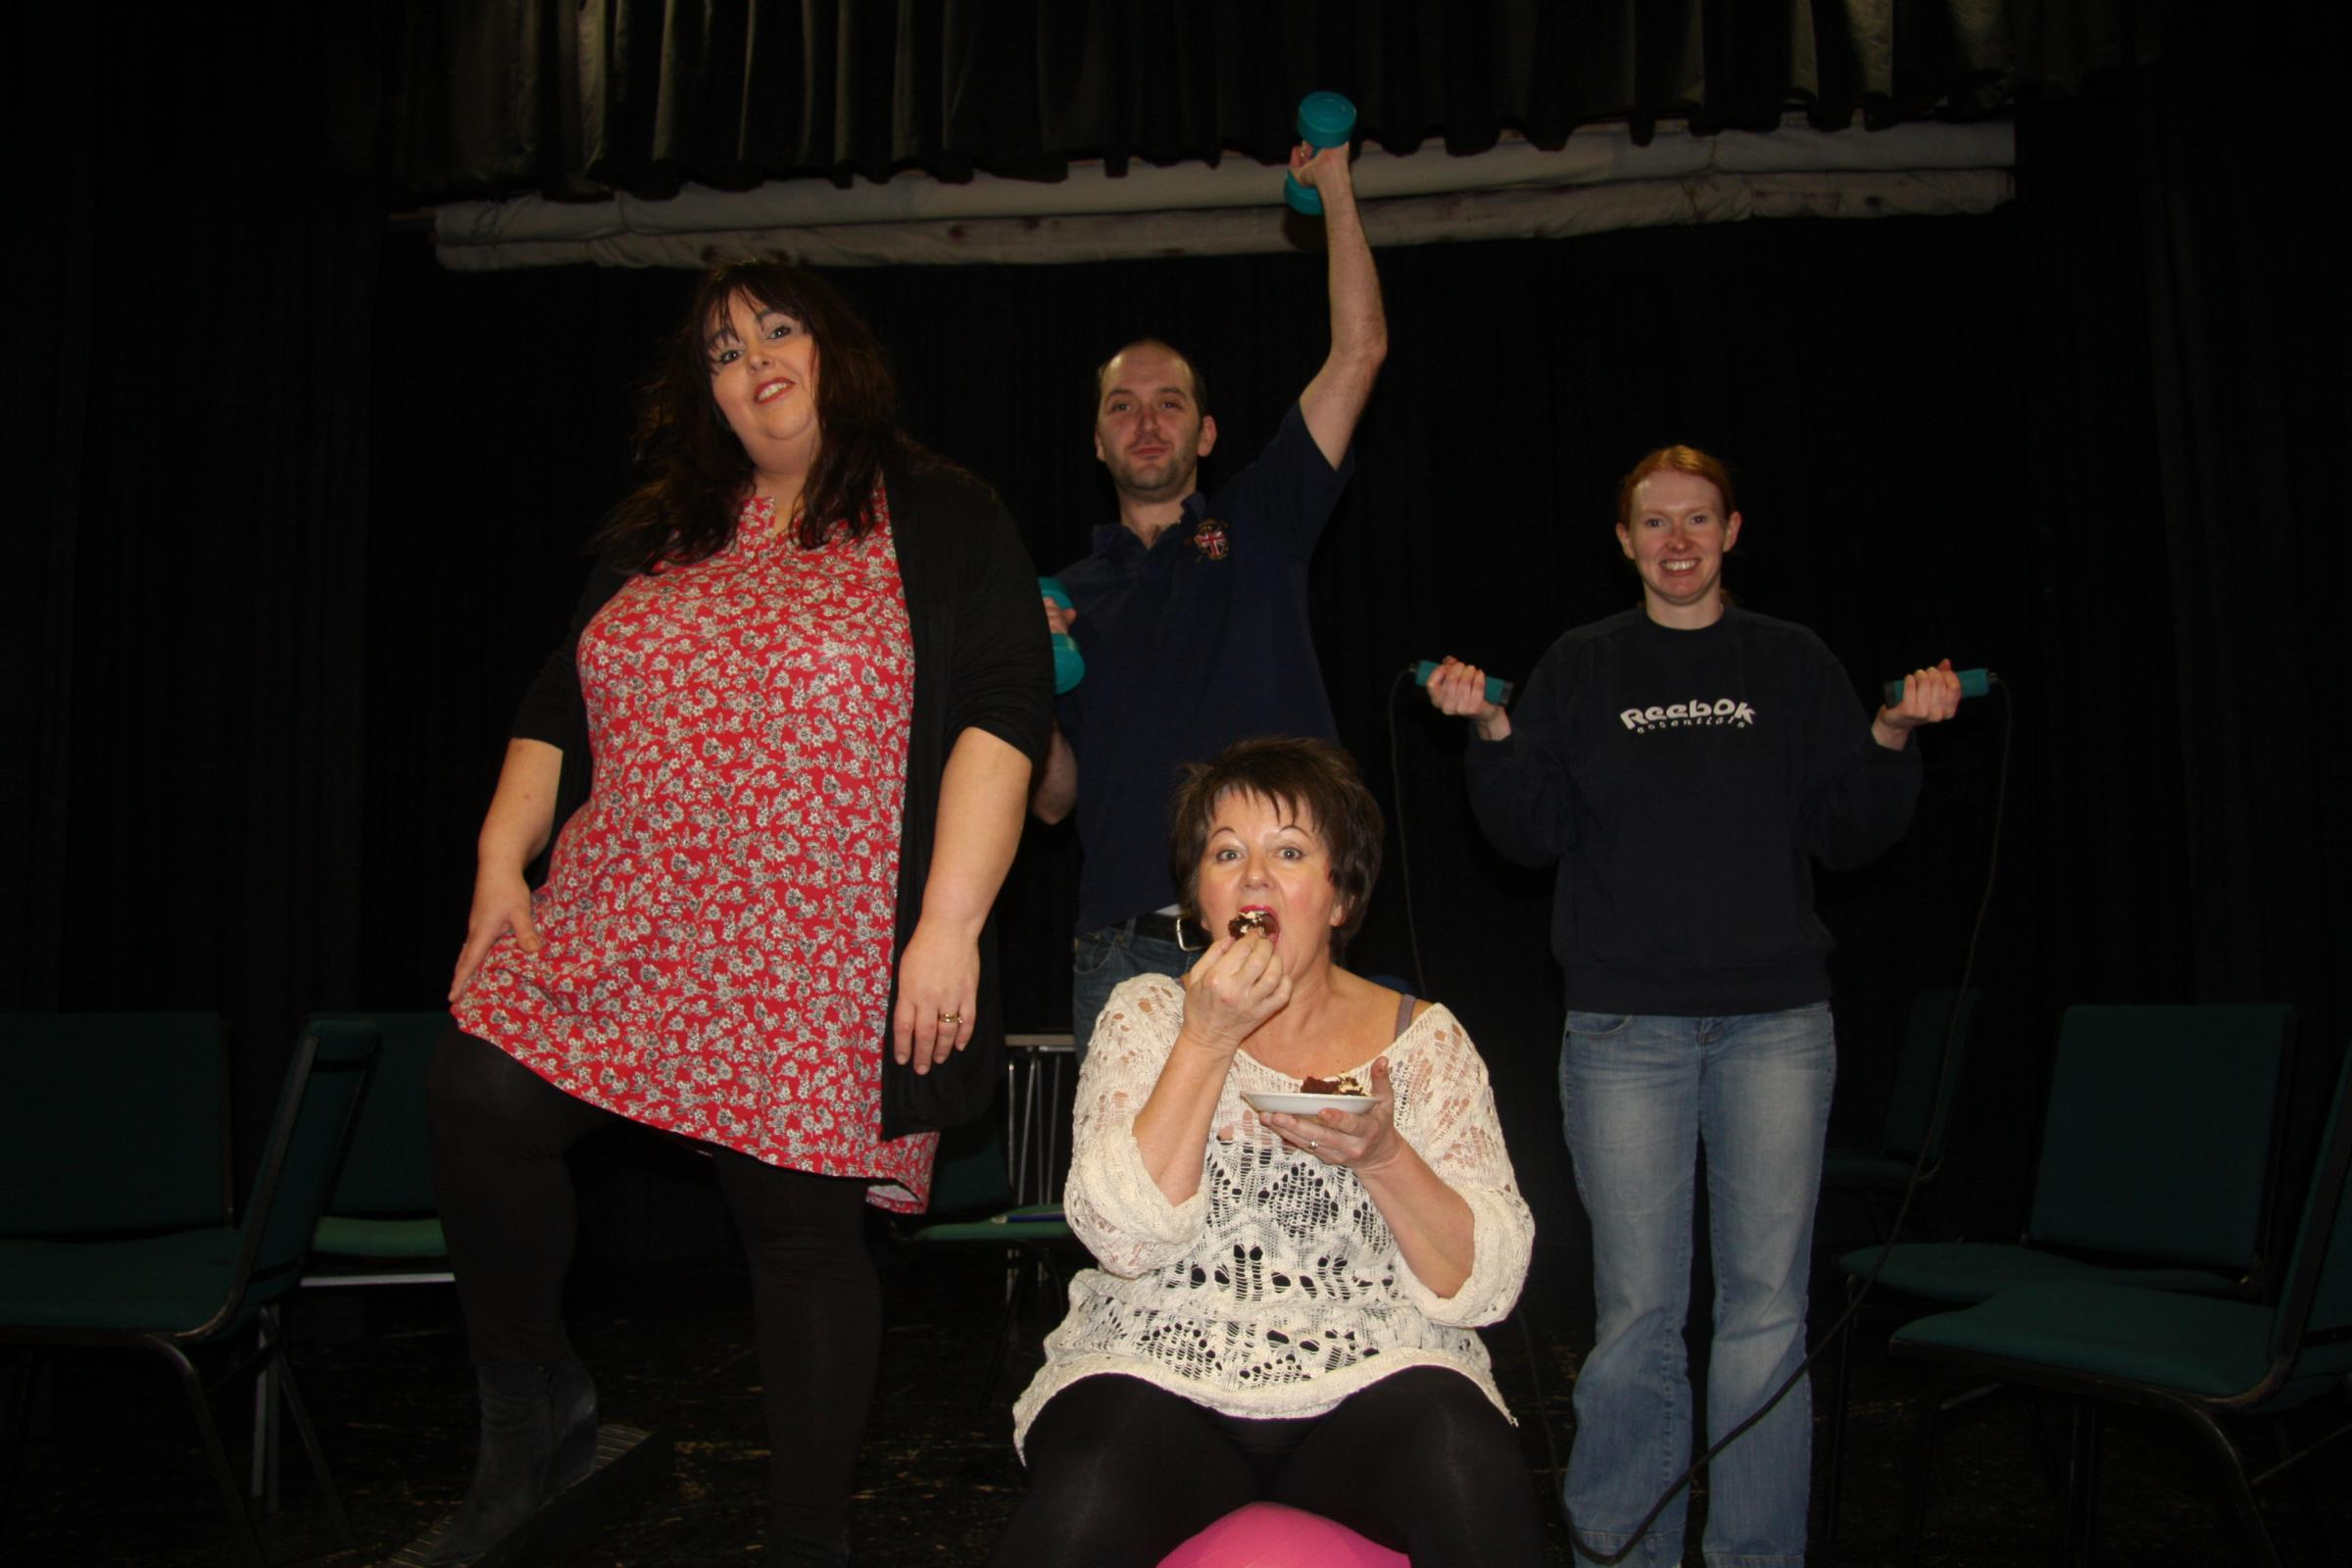 Sedgefield Players rehearse for their upcoming performance of Waiting for Gateaux